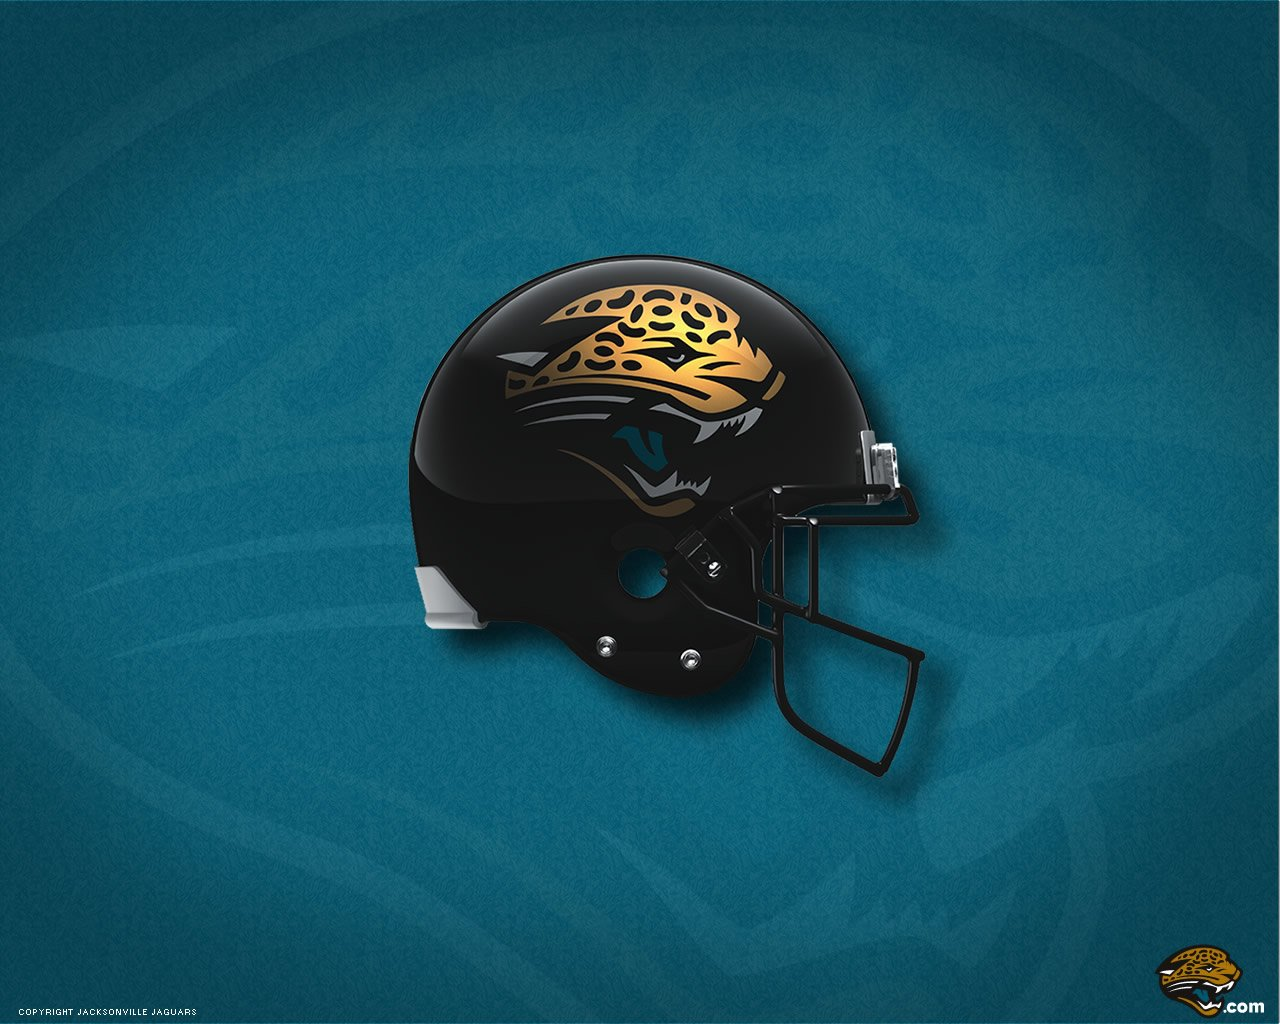 Jacksonville Jaguars Desktop Wallpaperjpg 14 Jun 2012 1128 21m Picture 1280x1024